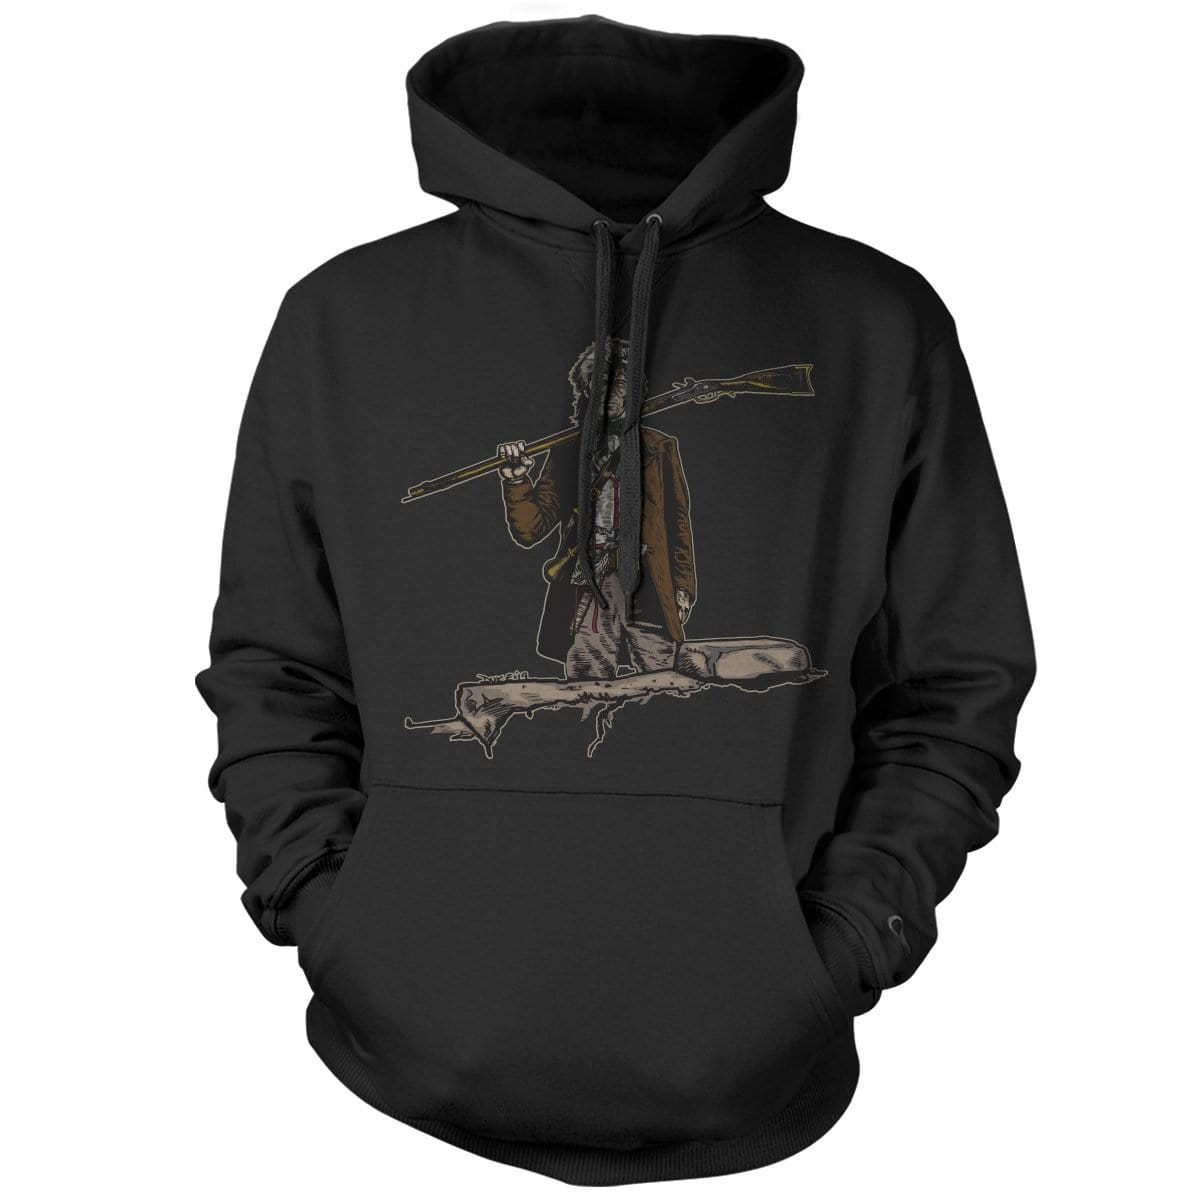 Original Pipe Hitter - Davy Hoodie - Black - Hoodies - Pipe Hitters Union